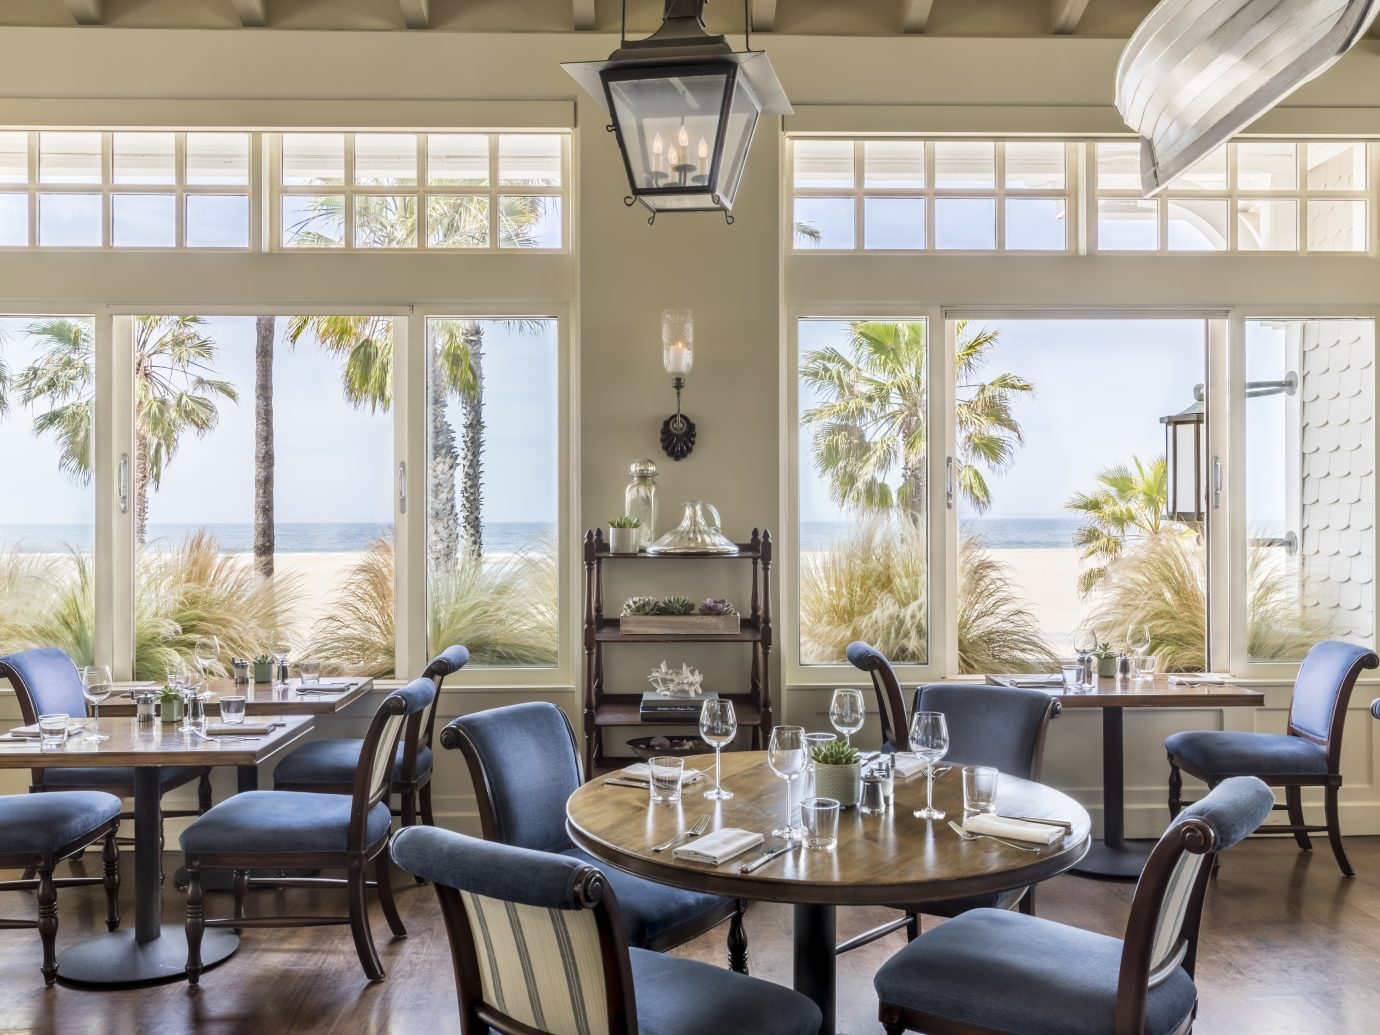 Restaurant at Shutters on the Beach, Santa Monica, CA